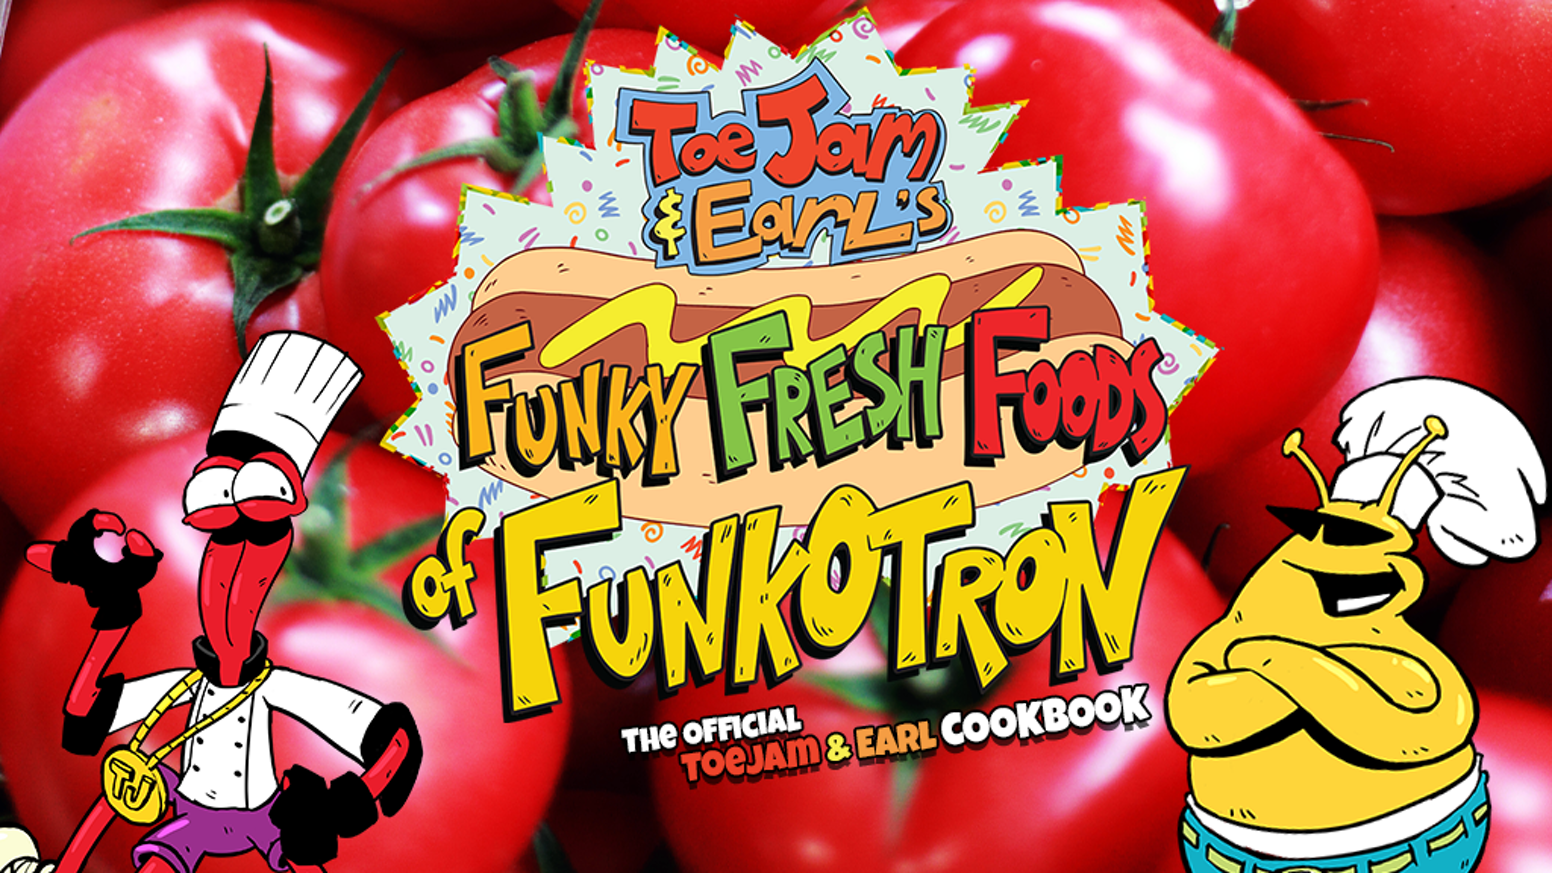 Official Cookbook of ToeJam & Earl. Join the duo as they bring a little out-of-this-world flair to classic dishes and dining fare.